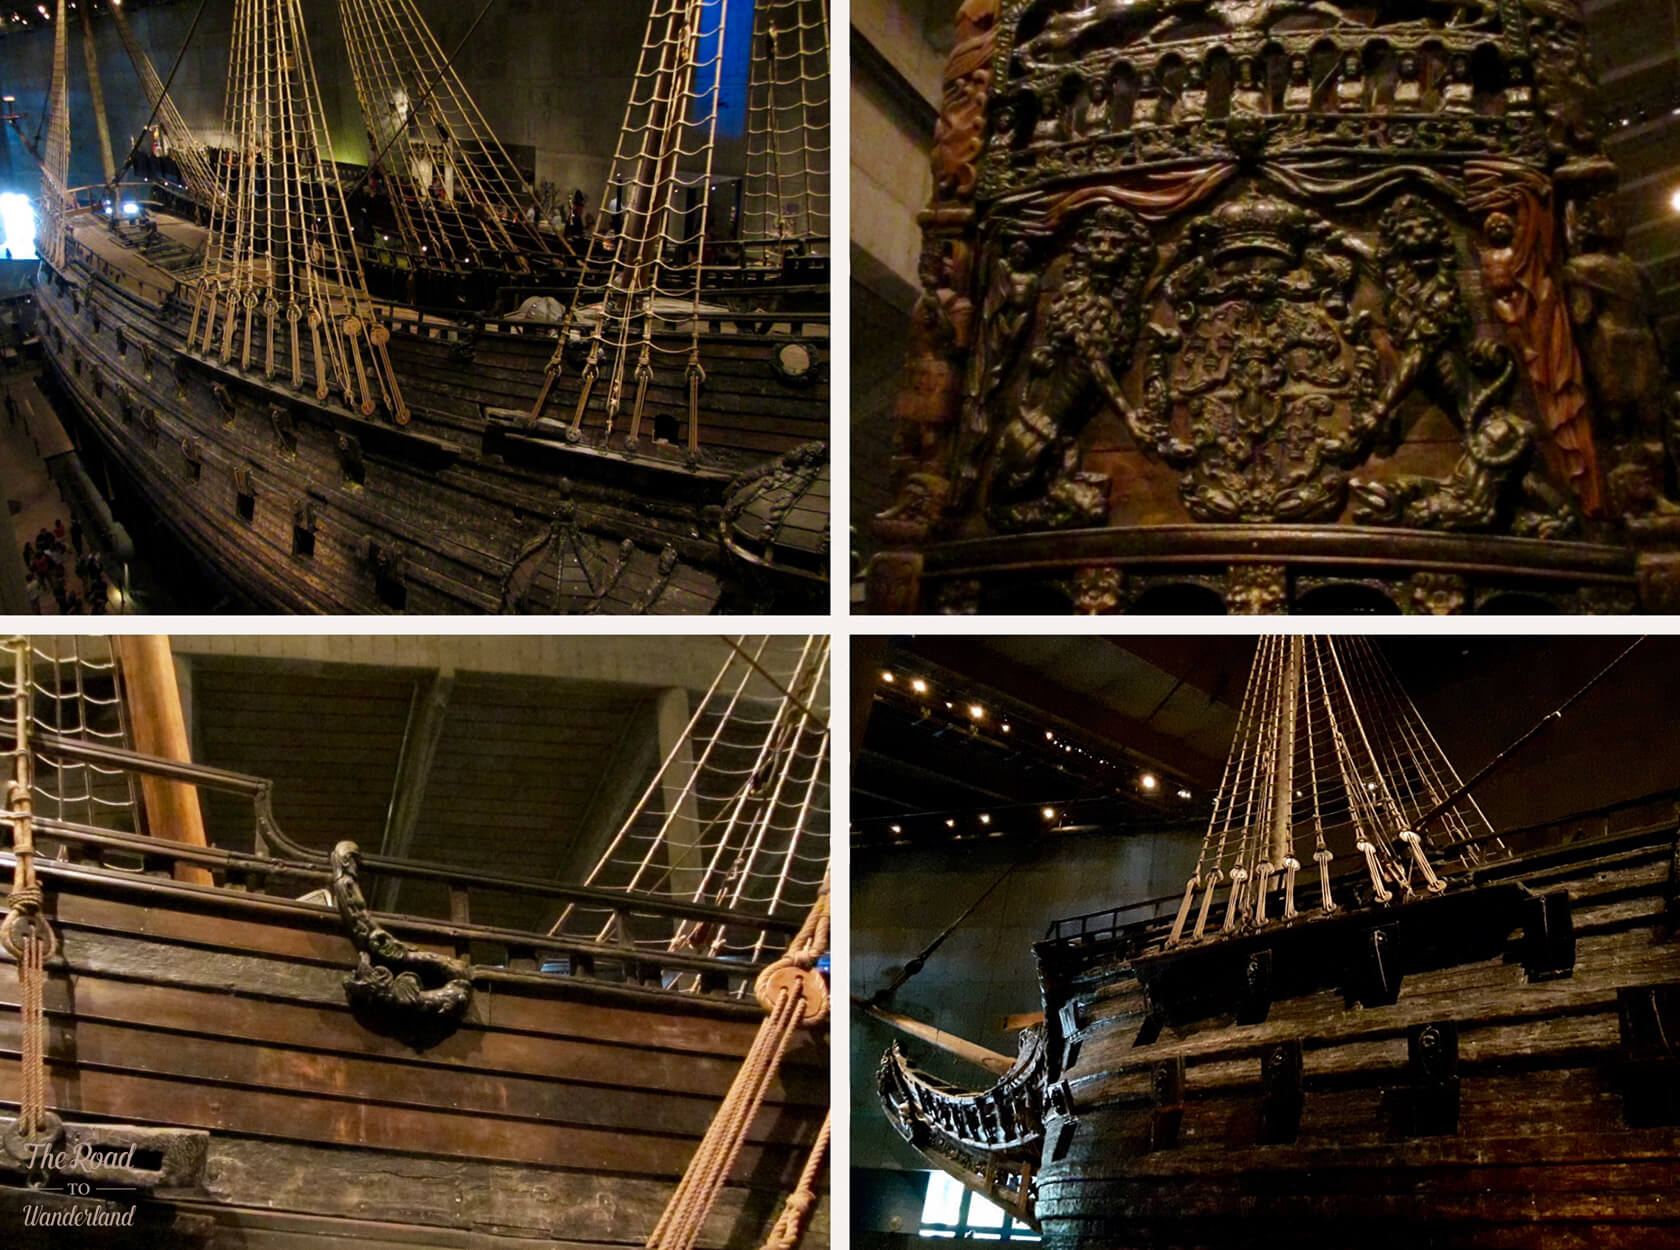 Top things to do in Stockholm: The Vasa Museum